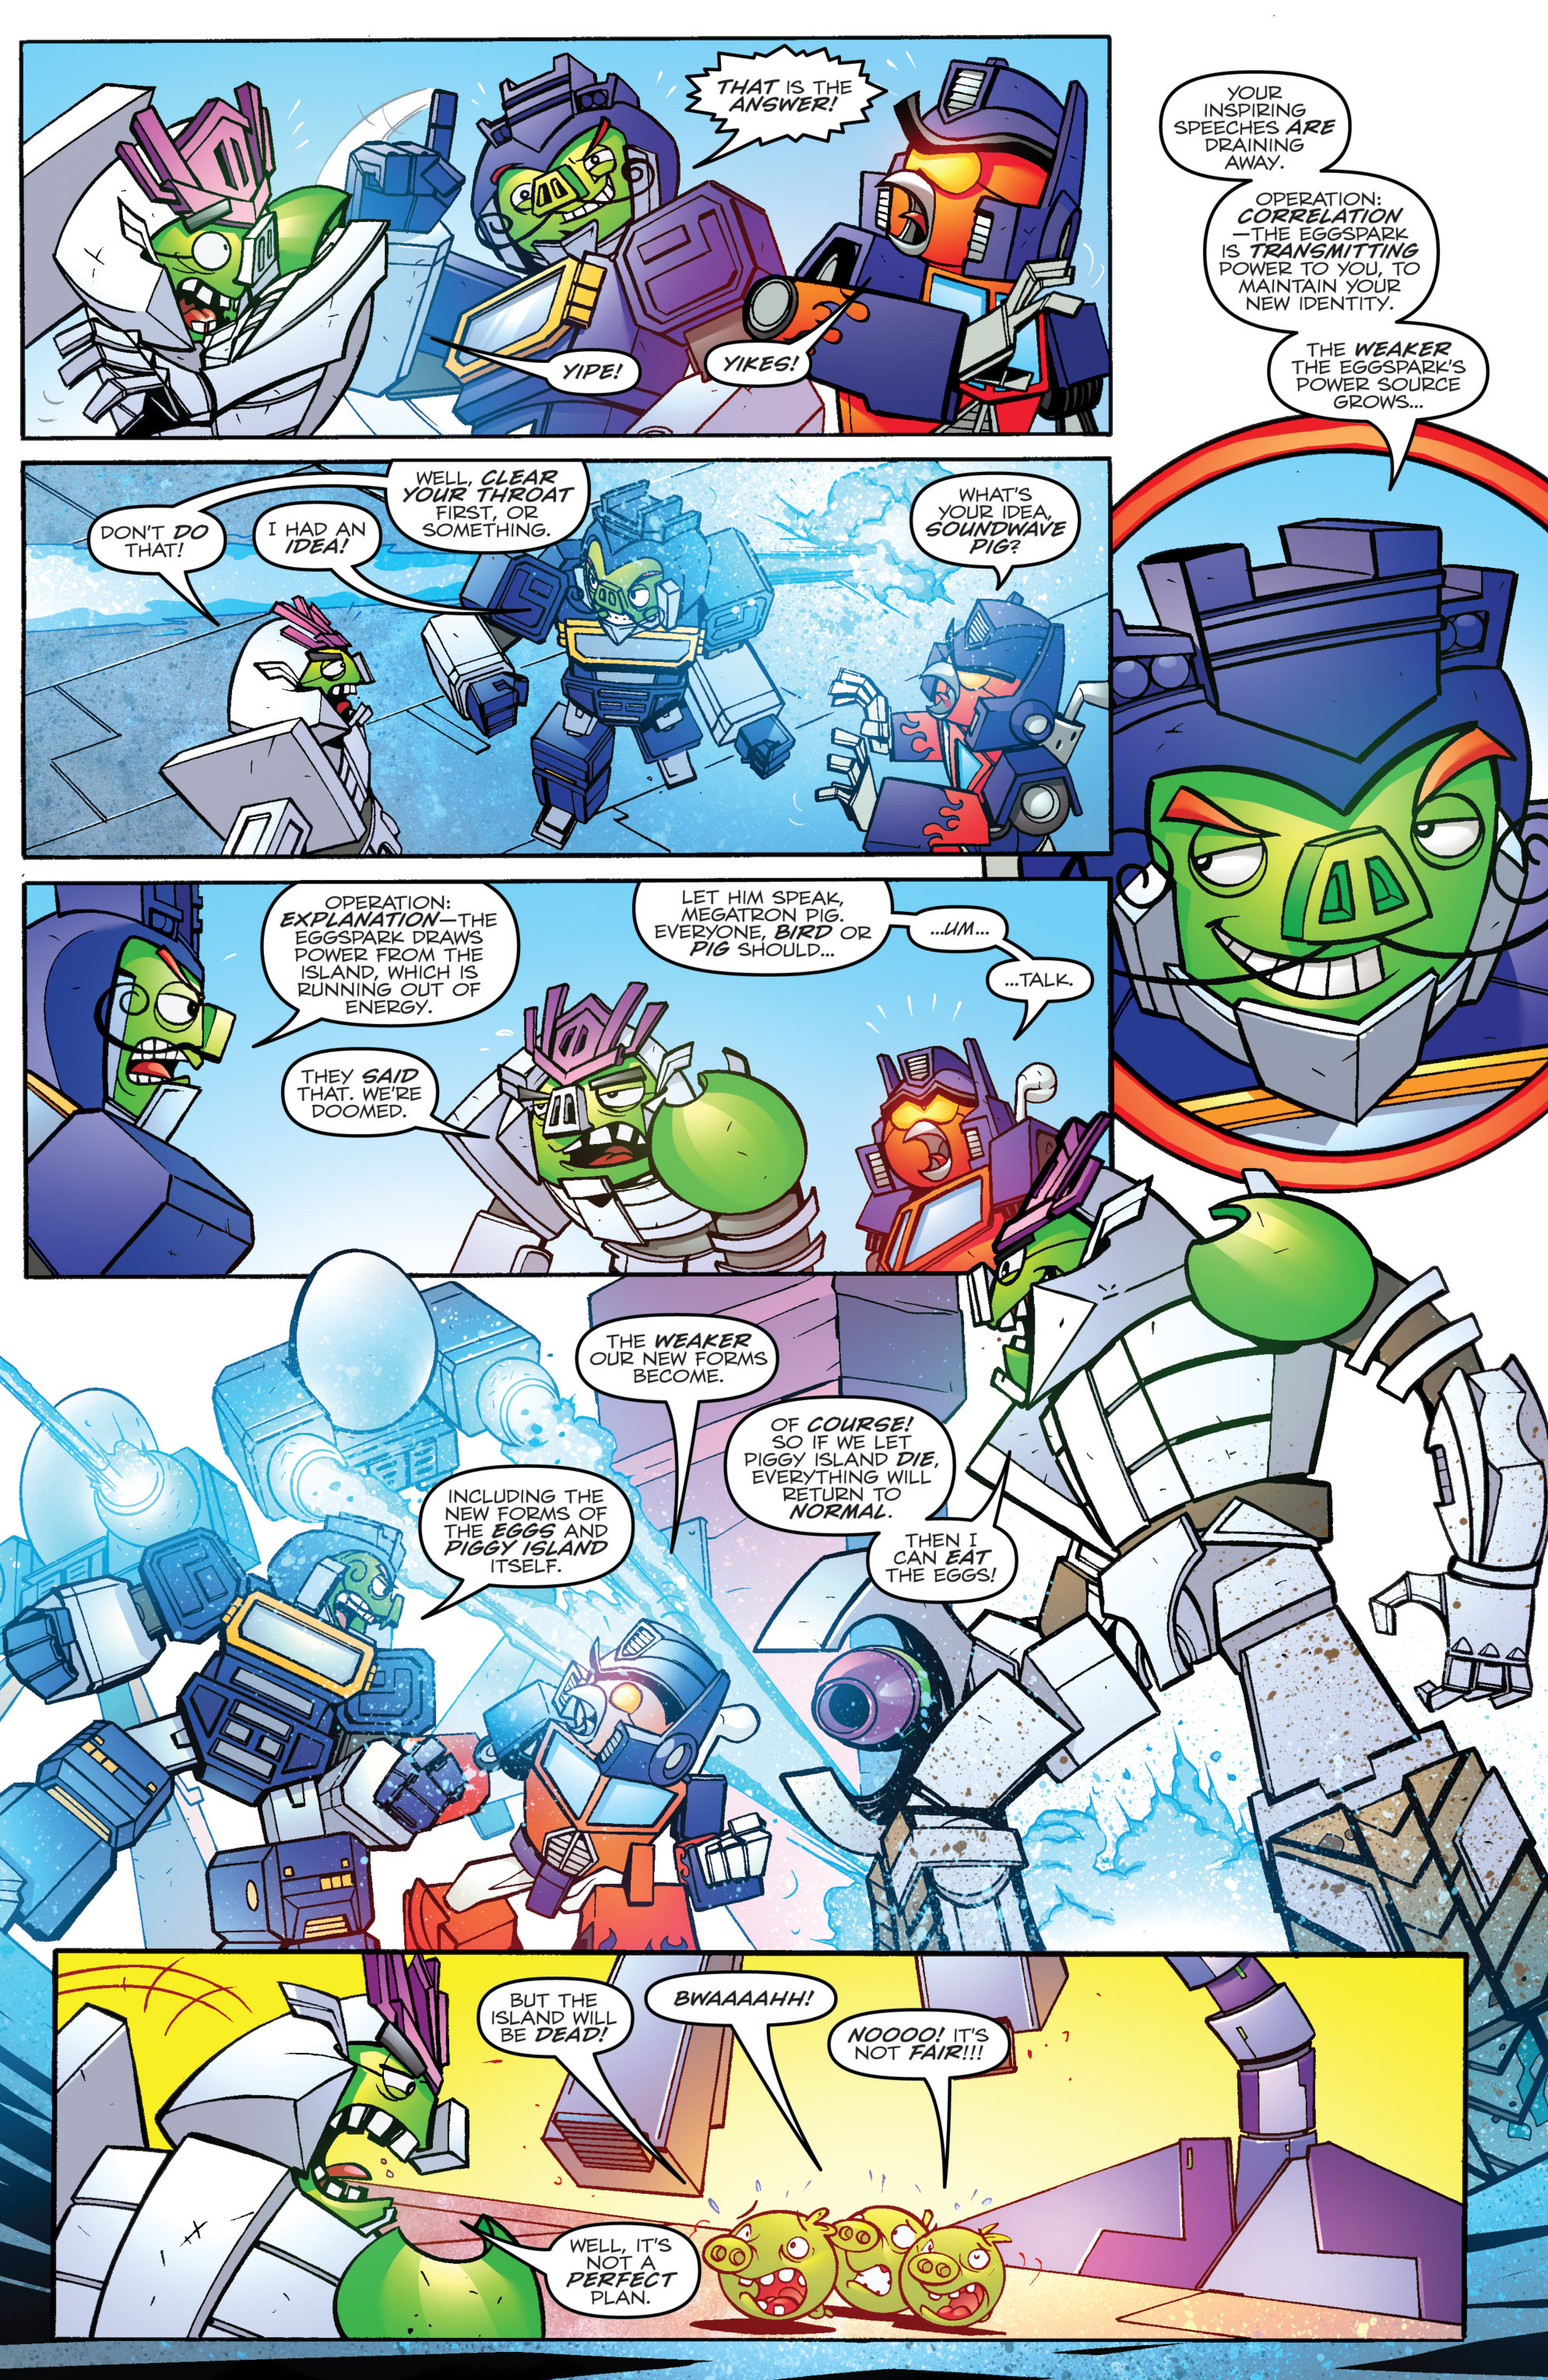 Read online Angry Birds Transformers comic -  Issue #4 - 4